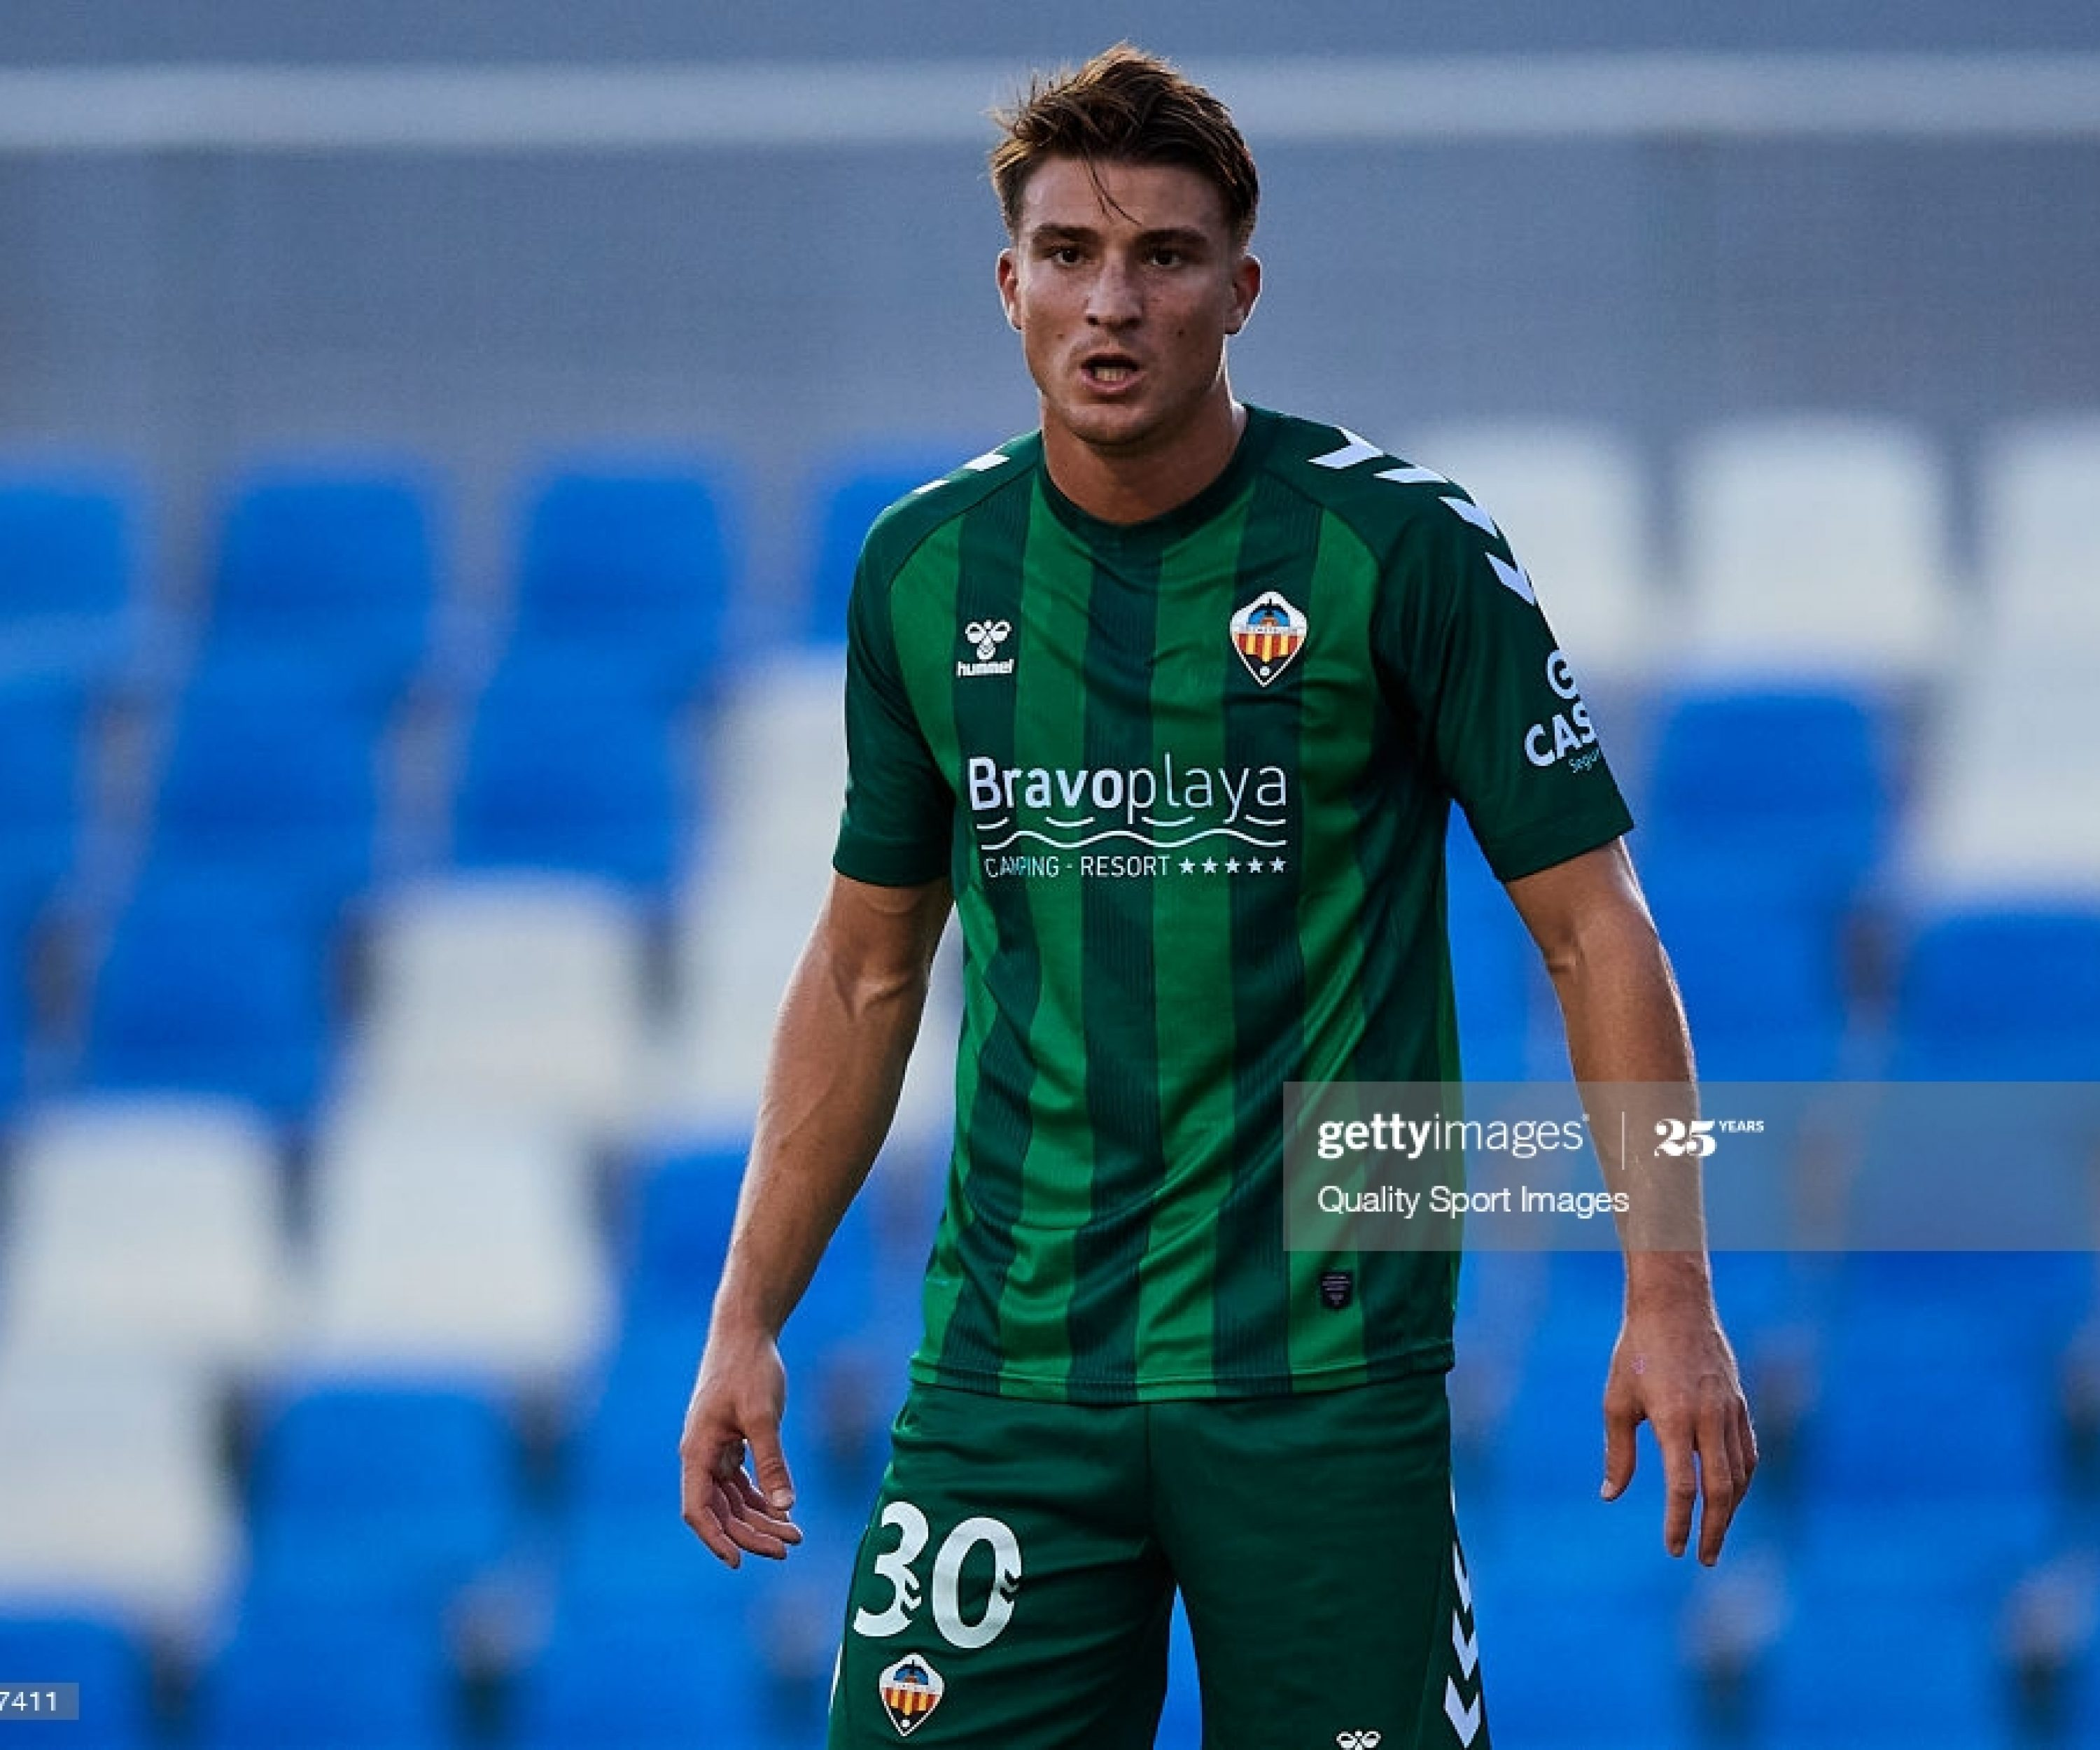 MURCIA, SPAIN - SEPTEMBER 01: Jordi Sanchez of Castellon looks on during a Pre-Season friendly match between Mallorca and Castellon at Pinatar Arena on September 01, 2020 in Murcia, Spain.  (Photo by Silvestre Szpylma/Quality Sport Images/Getty Images)